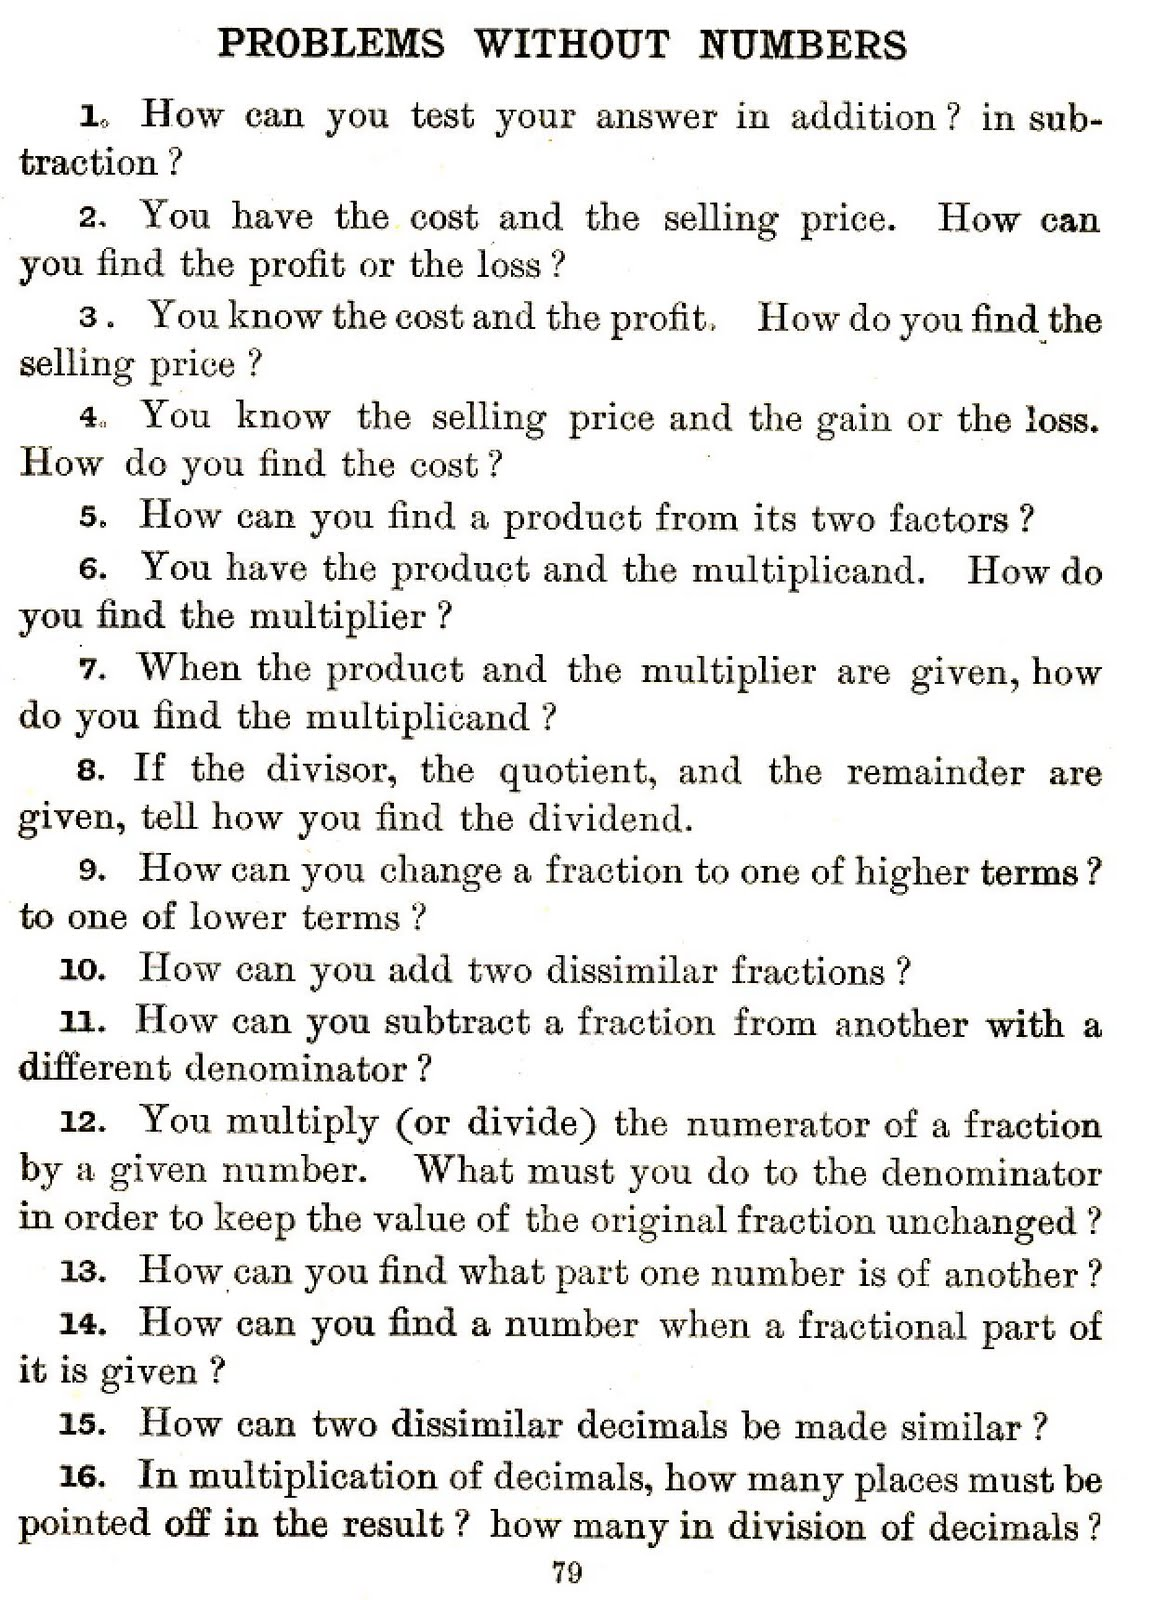 6Th Grade Math Worksheets Word Problems – 6th Grade Math Problems Worksheet